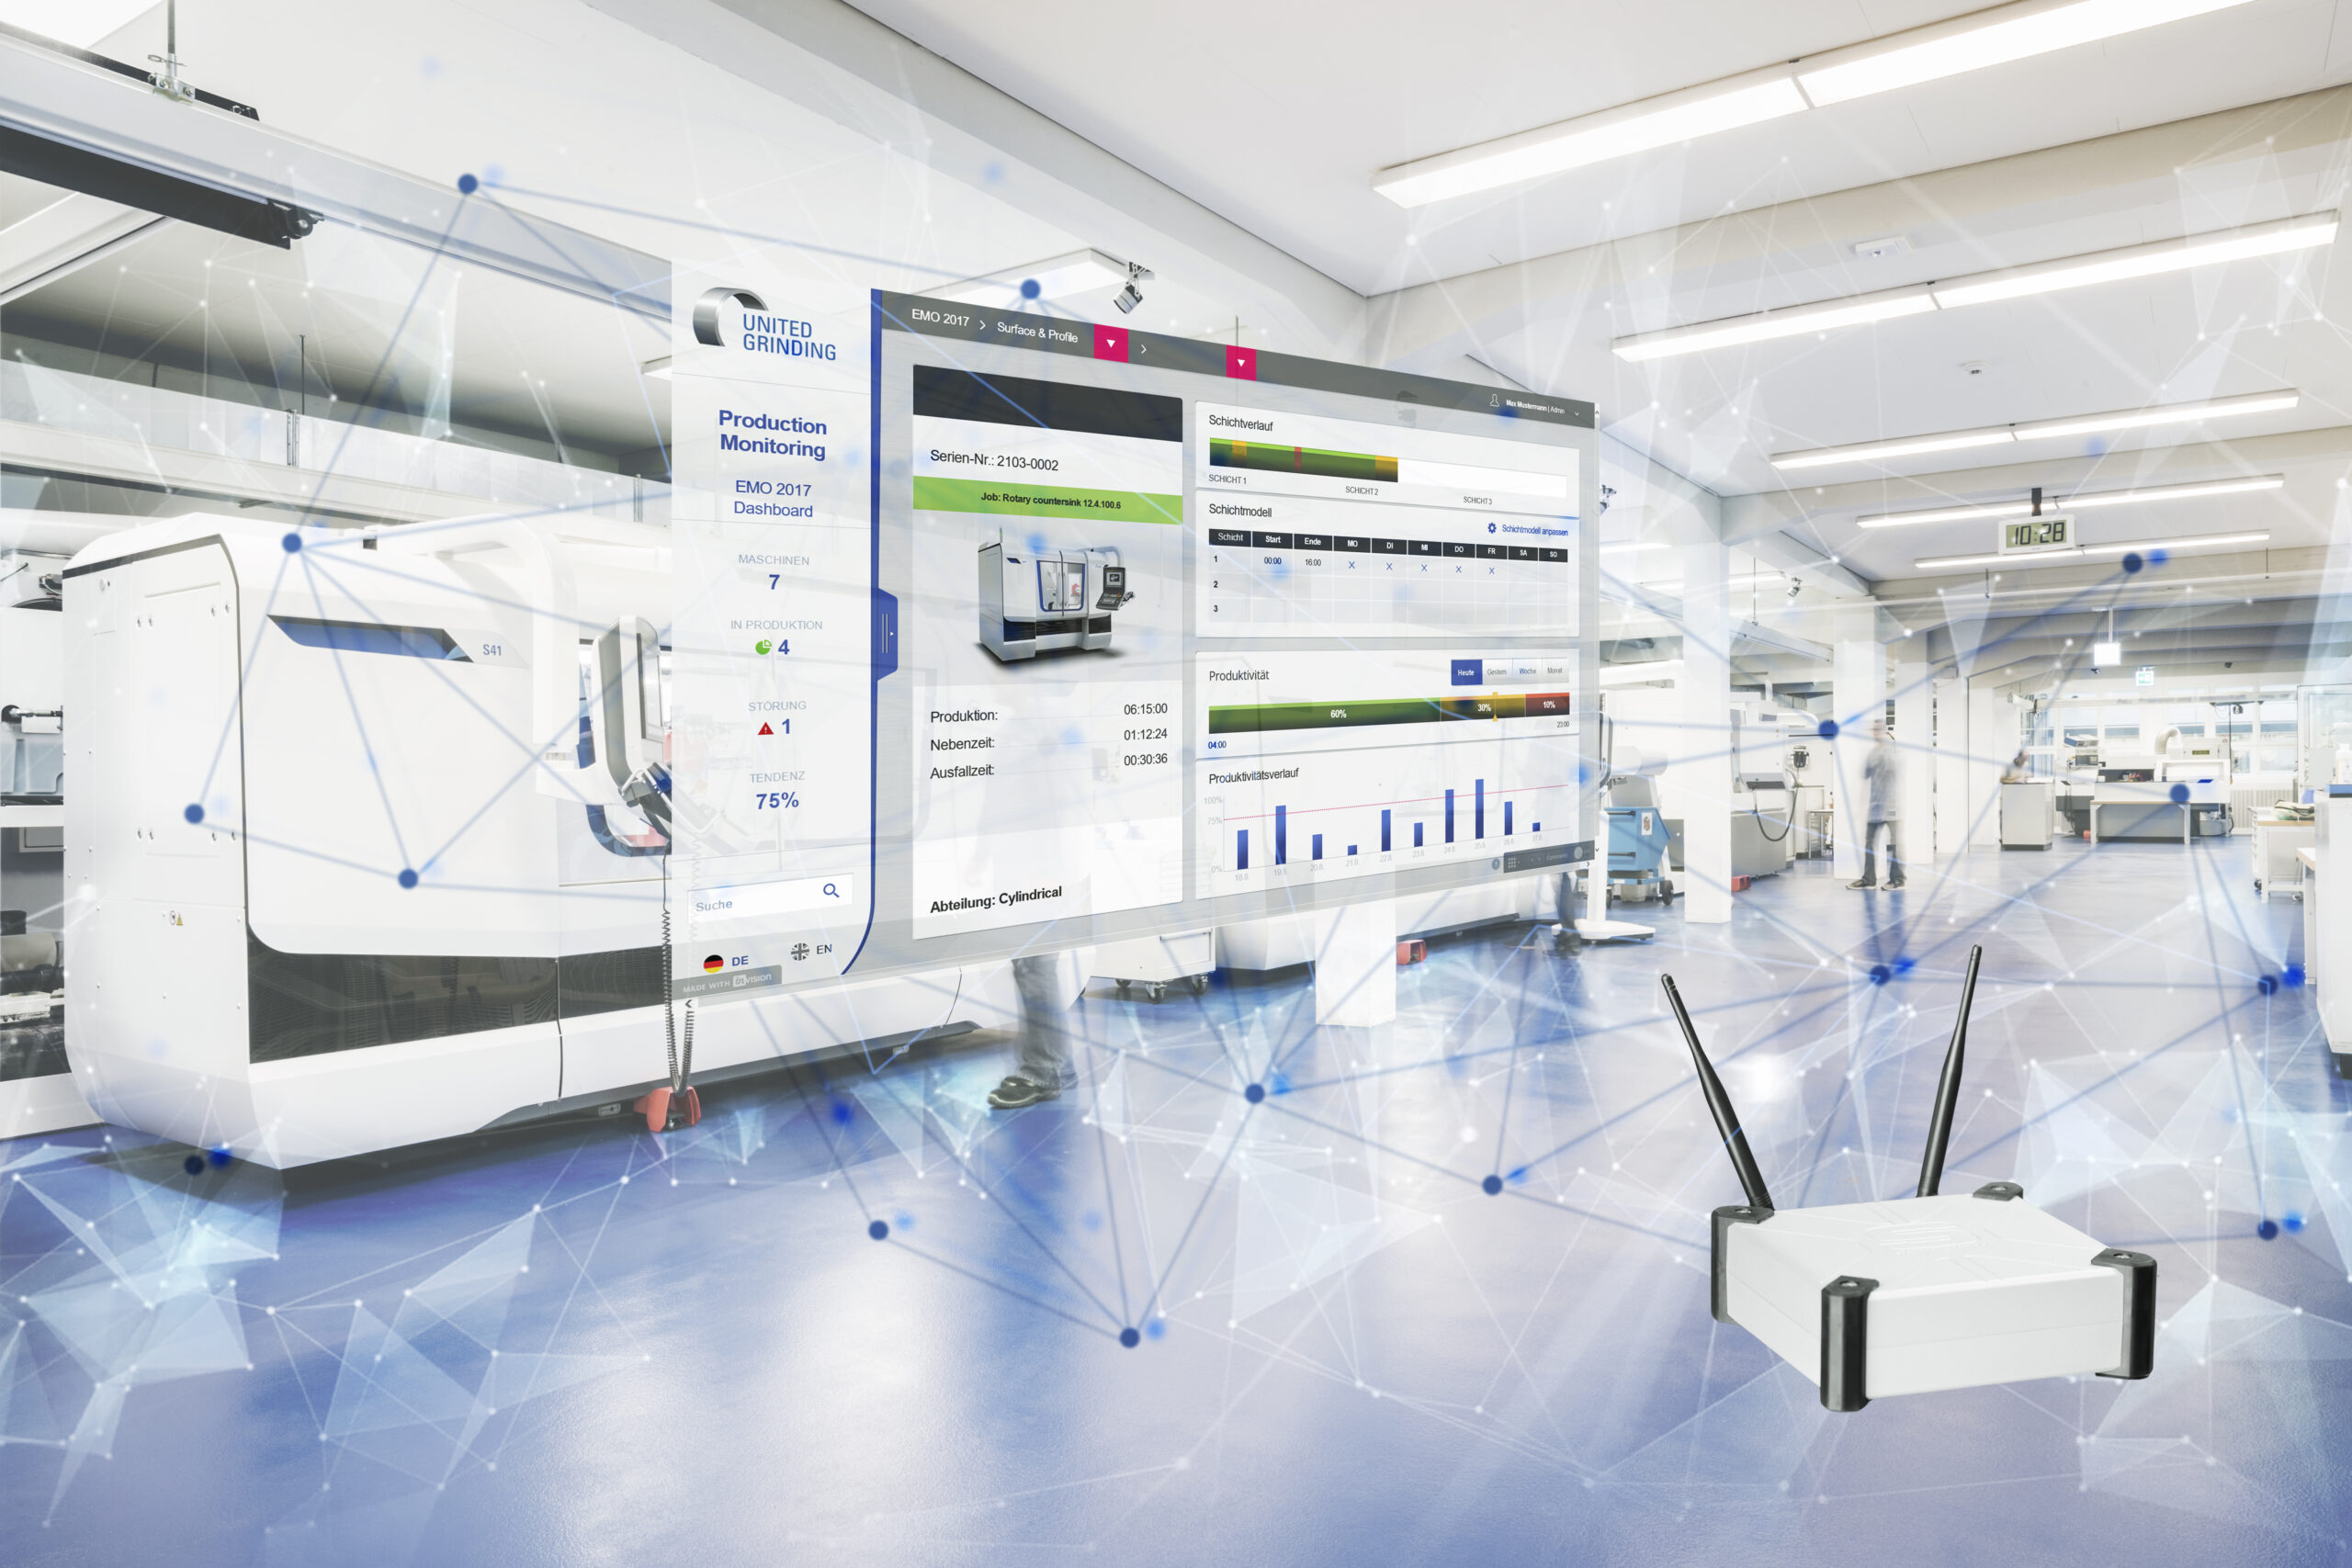 One of the United Grinding Digital Solutions – Production Monitoring.